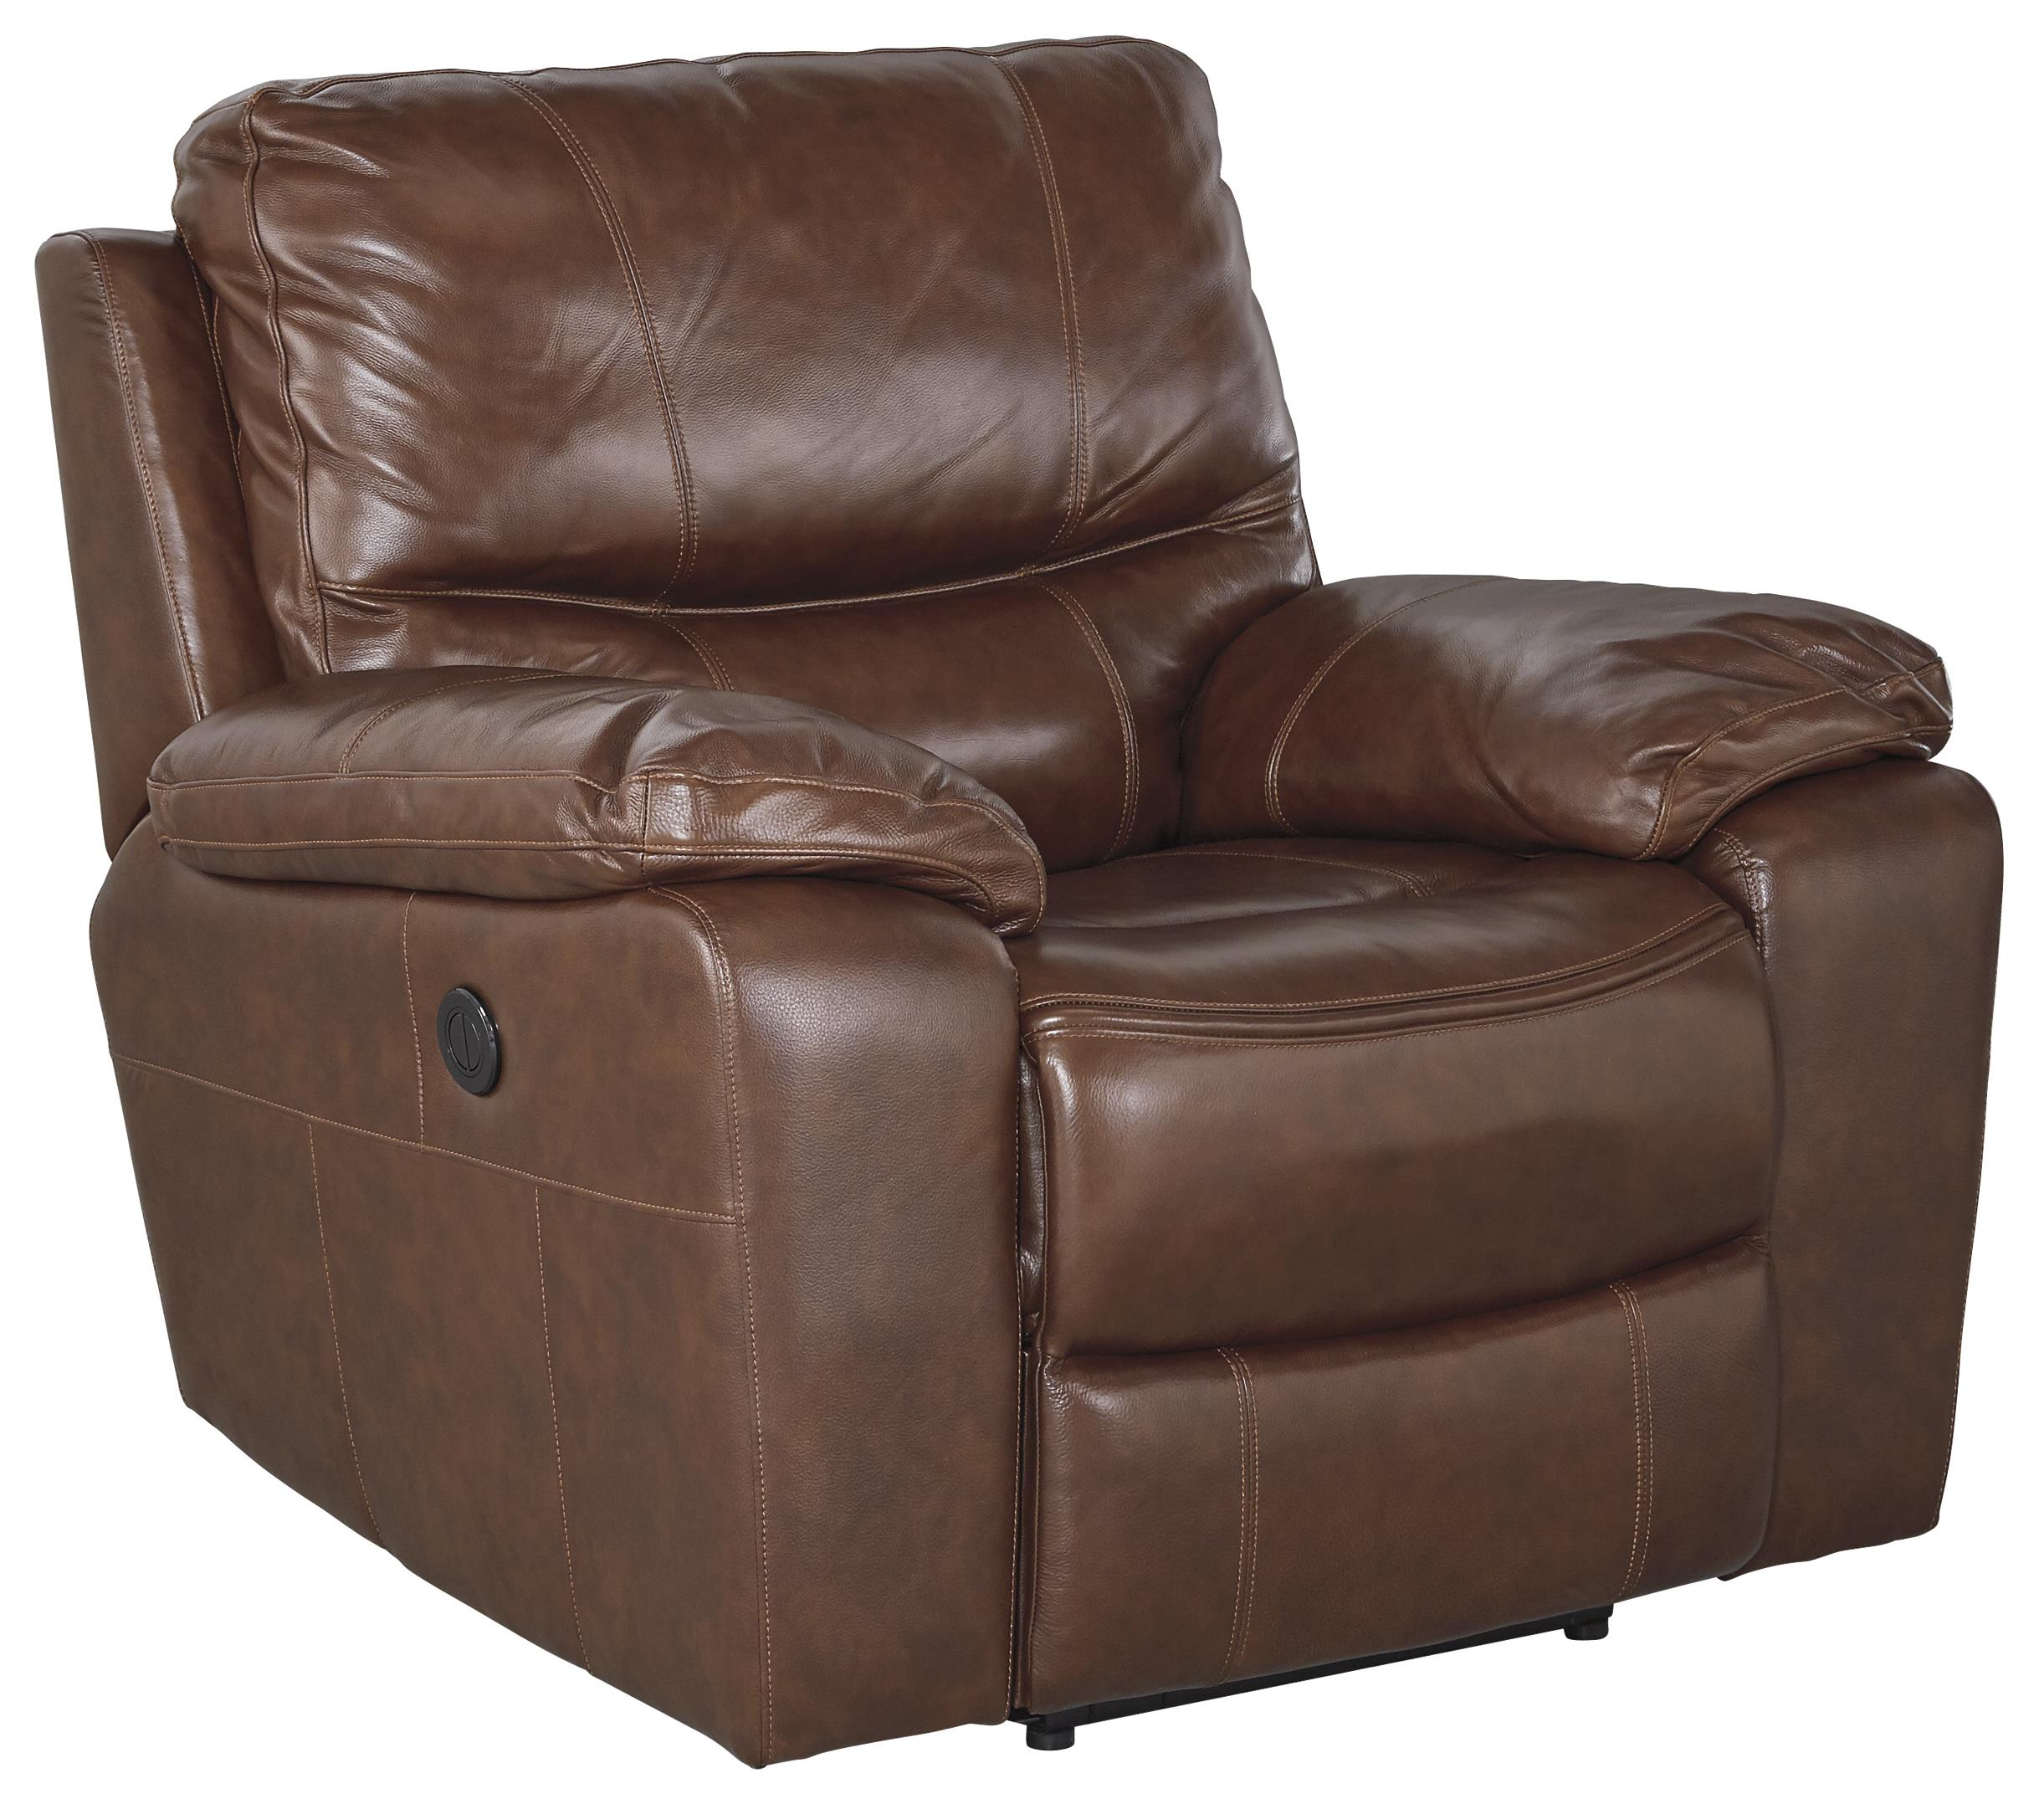 Signature Design by Ashley Panache Power Rocker Recliner - Item Number: U7290098